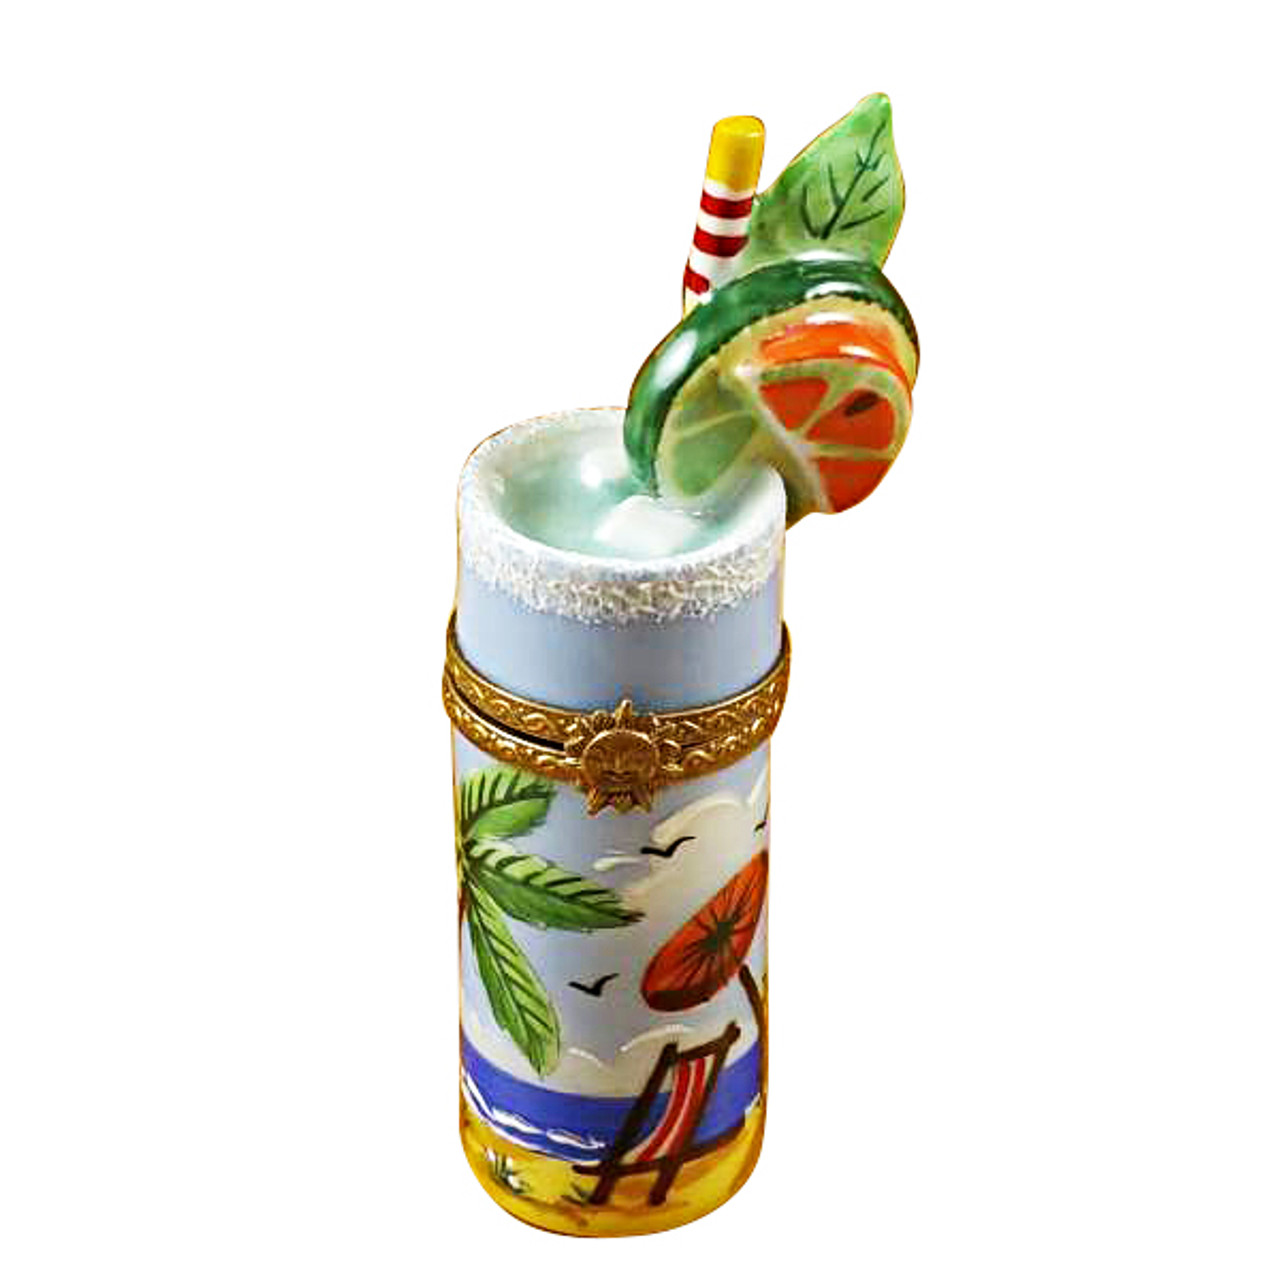 Tropical Cocktail Glass Rochard Limoges Box RW086-L